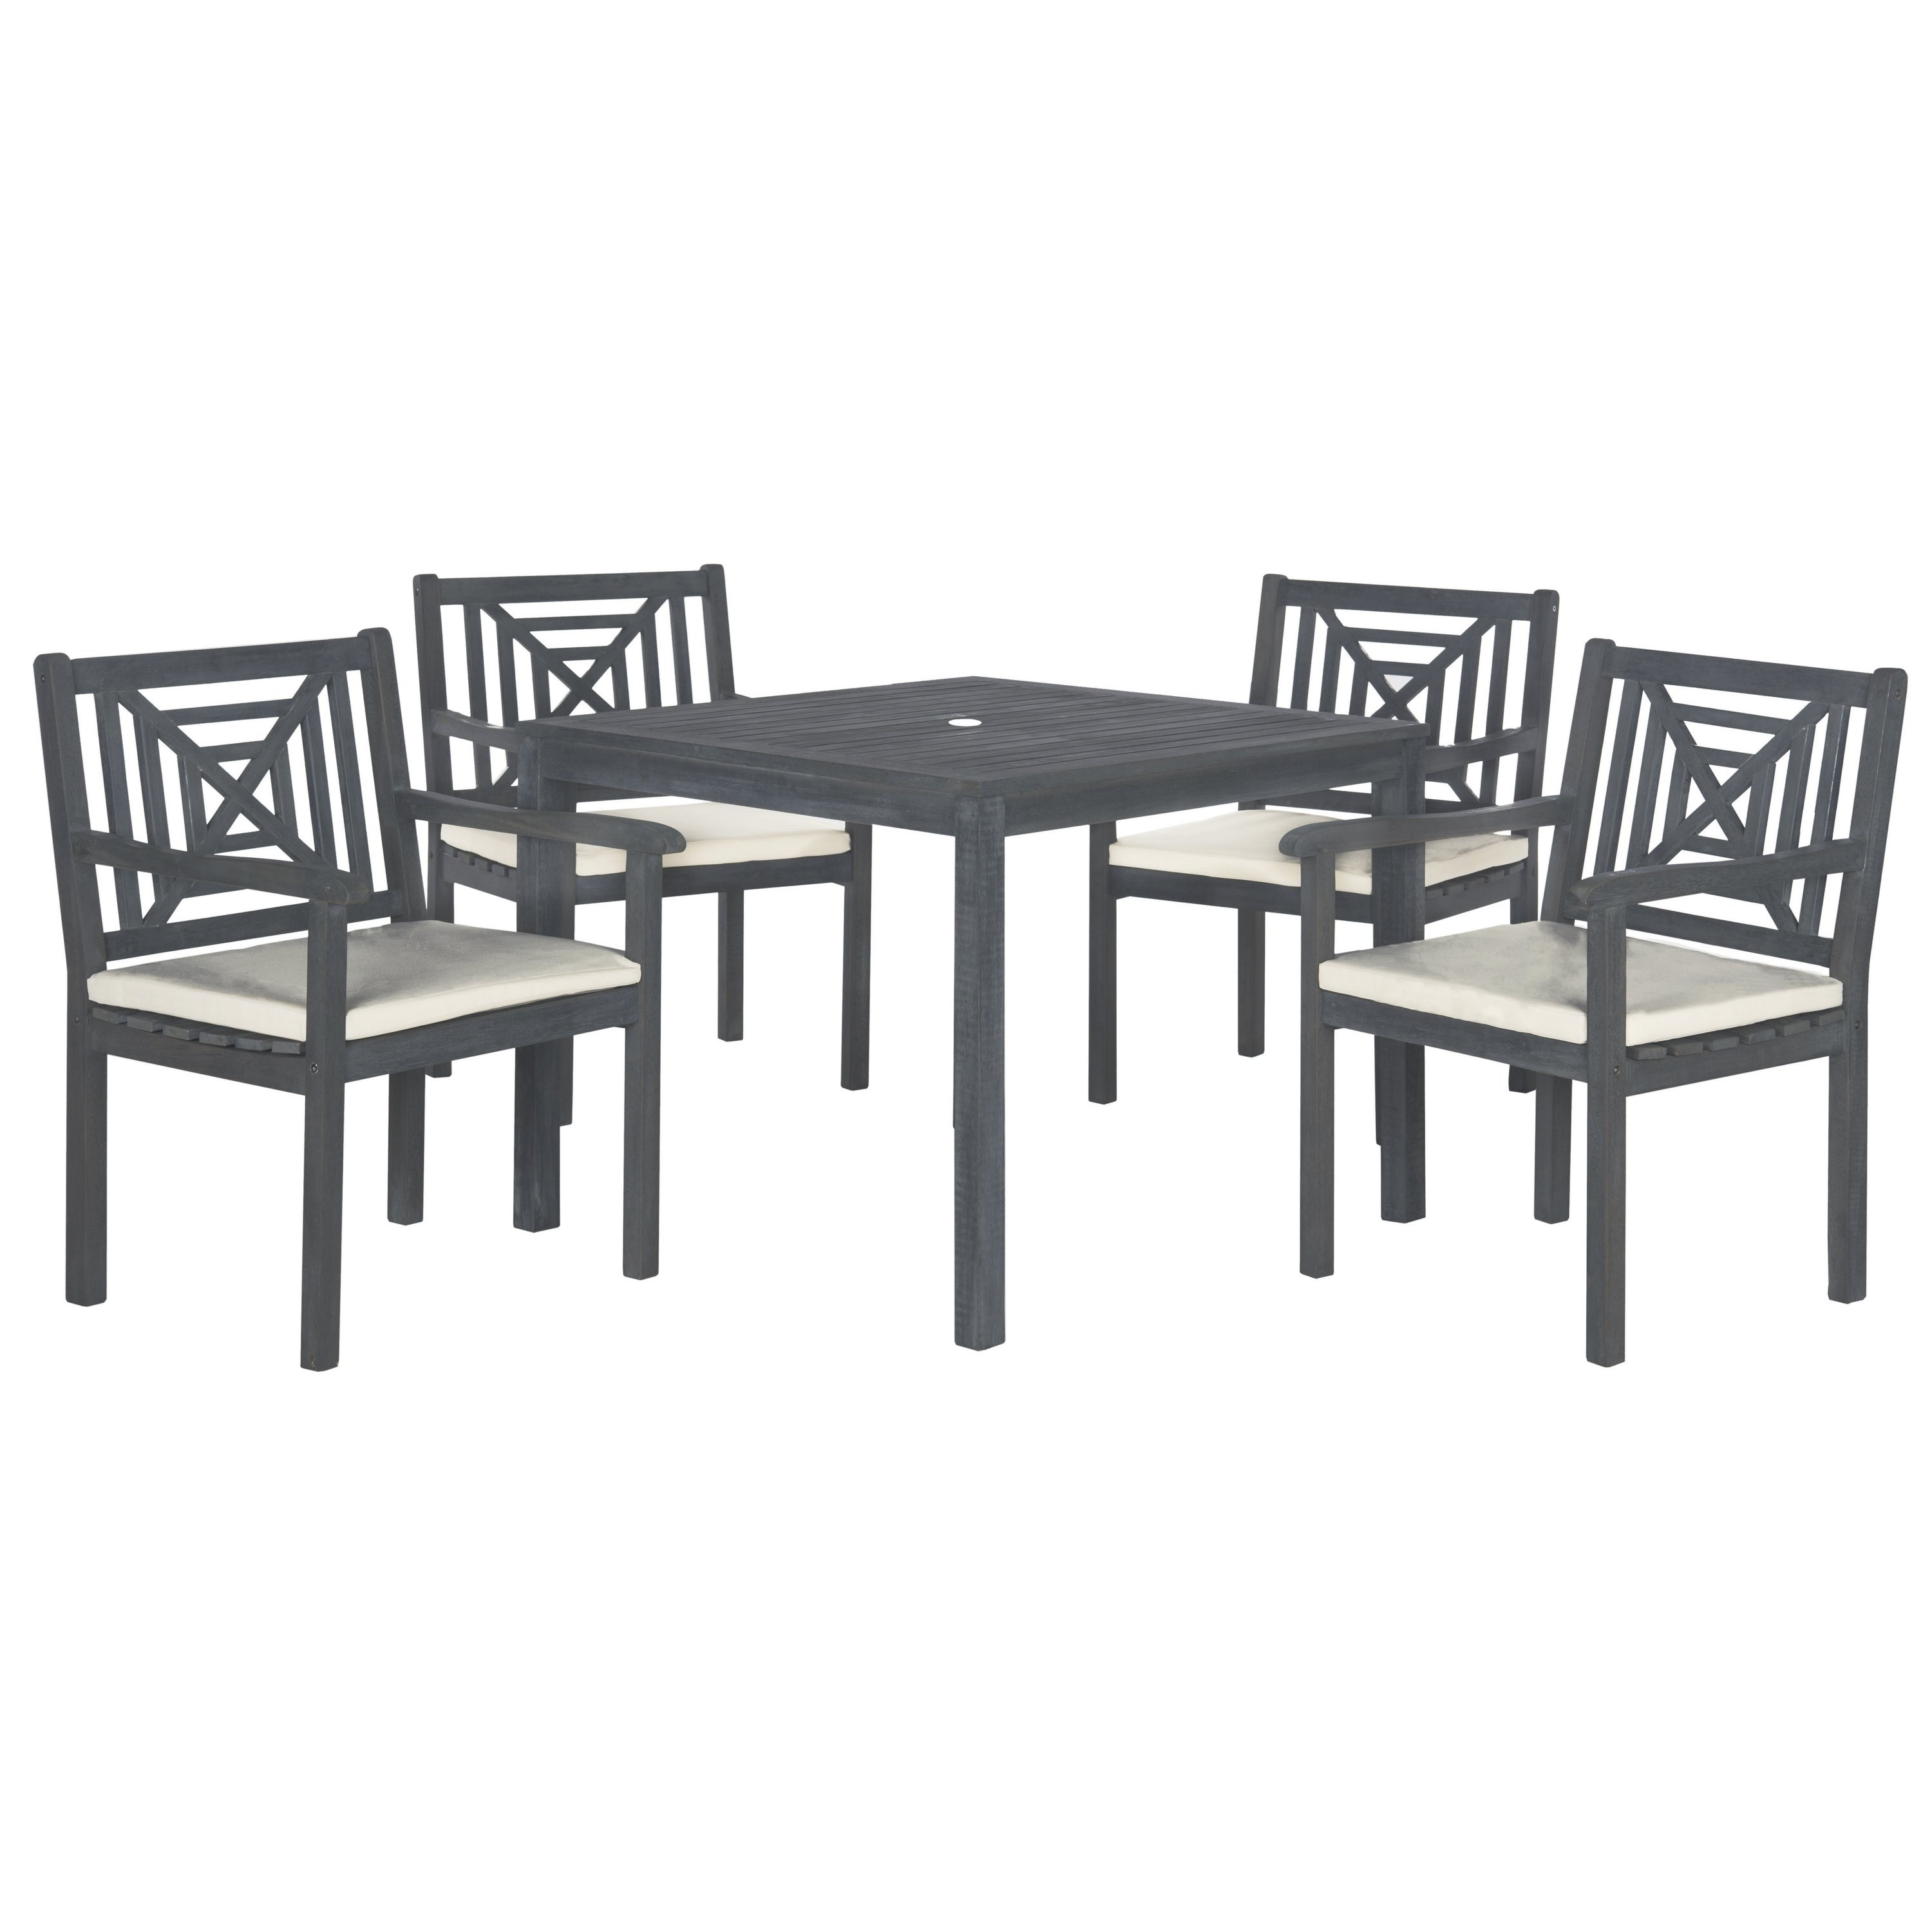 Safavieh Outdoor Living Del Mar Ash Grey Acacia Wood 5 Piece Beige Inside Best And Newest Delmar 5 Piece Dining Sets (View 20 of 25)